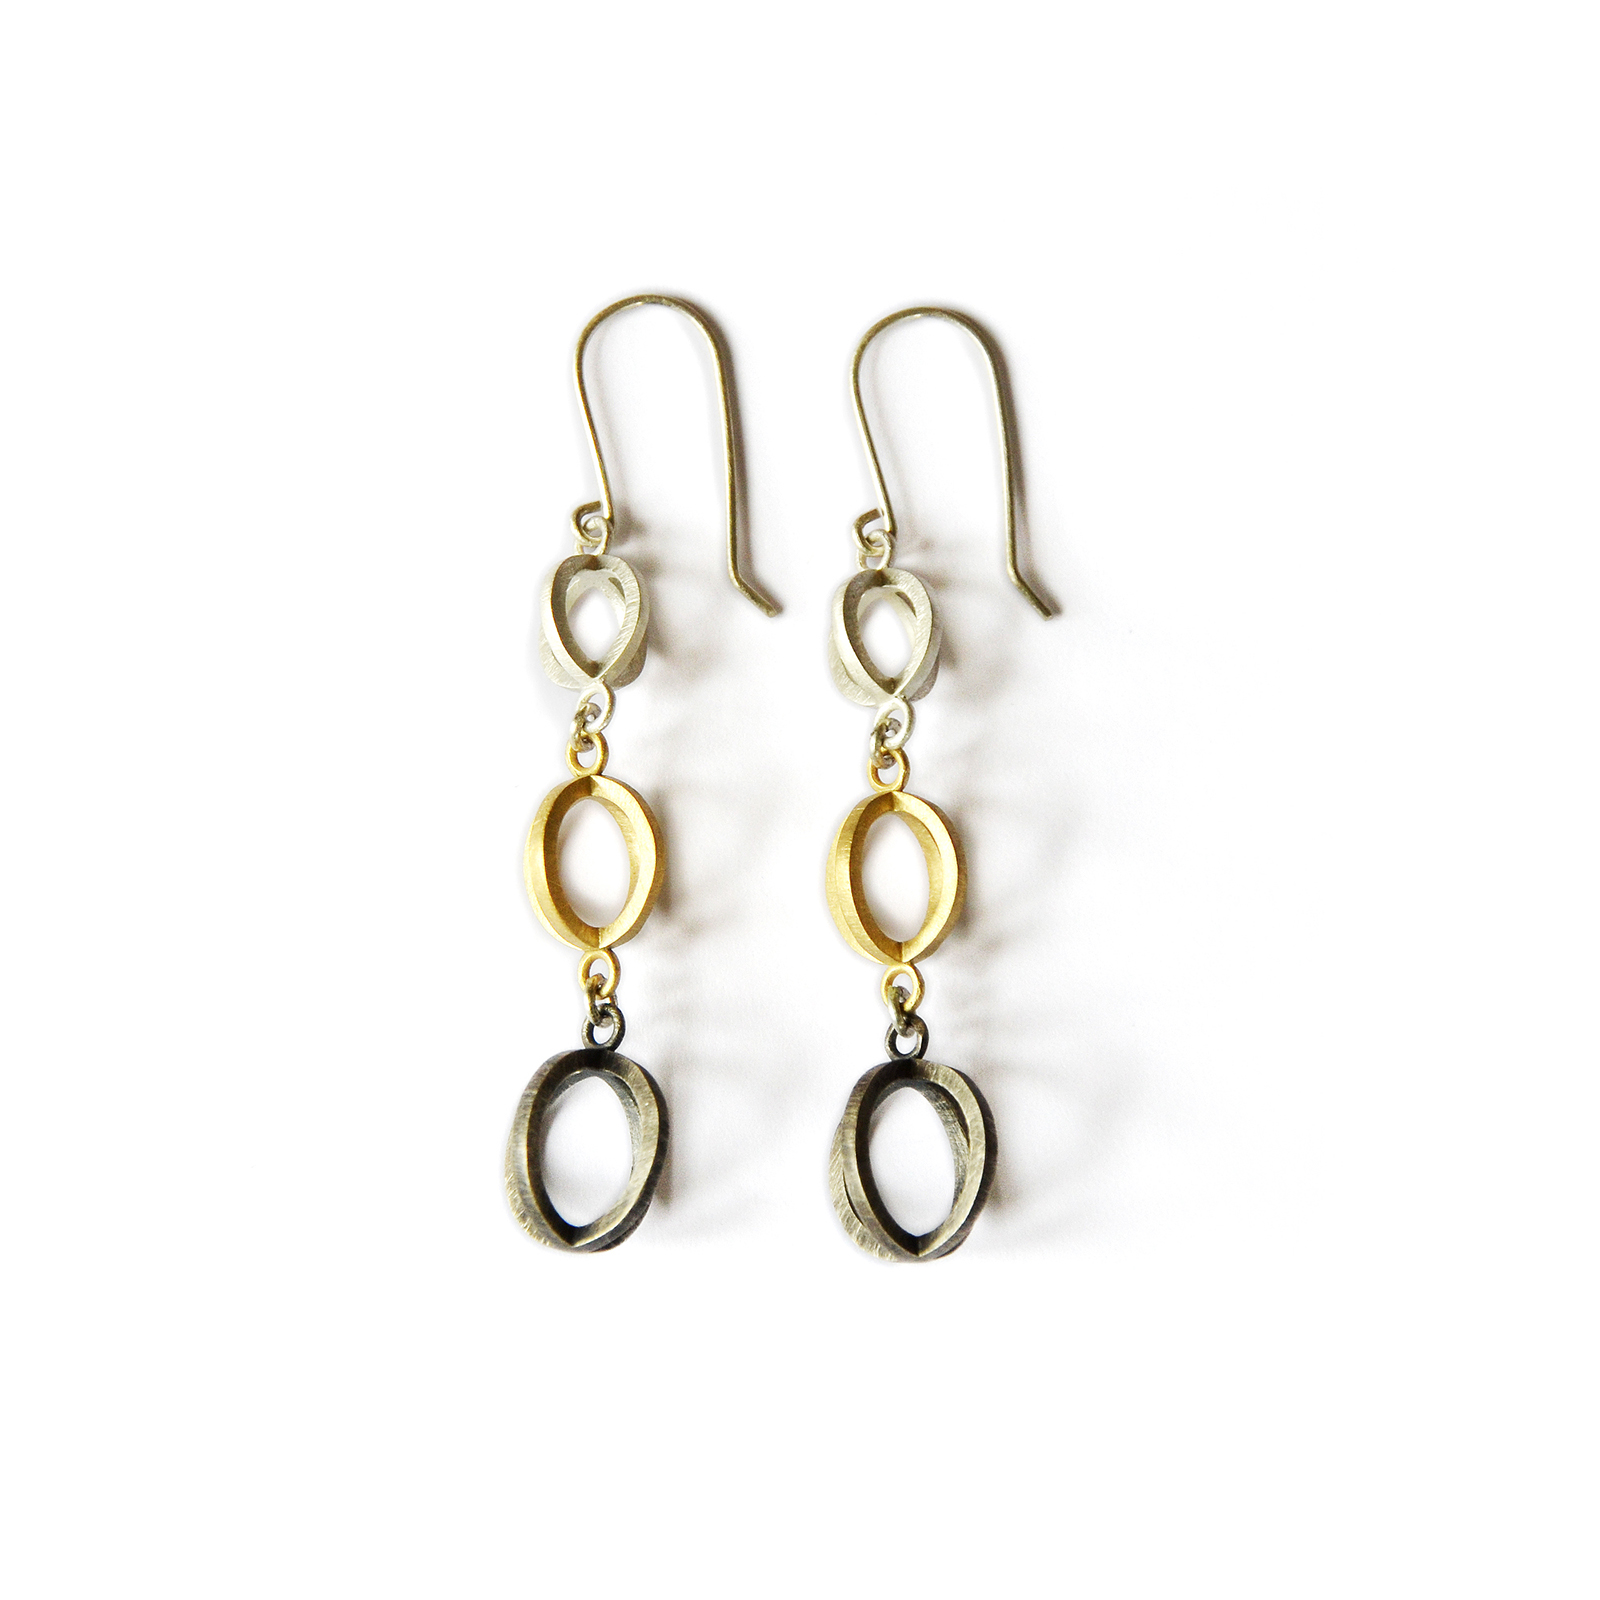 Trinity Earrings, sterling silver, 18ct gold. 2018